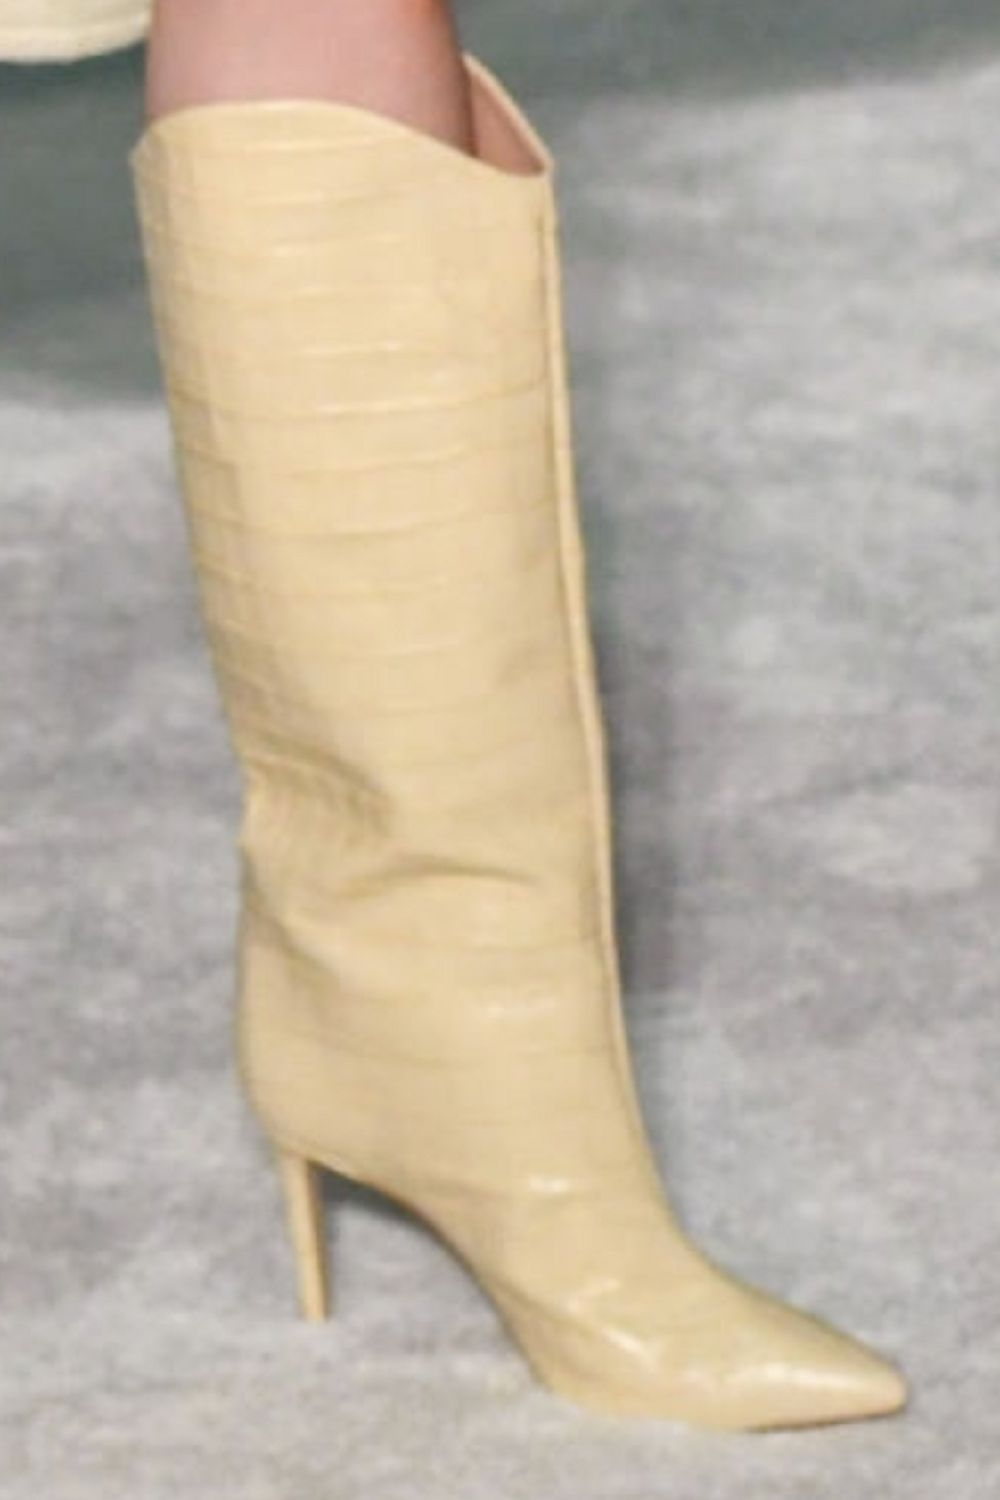 Picture of Coco Rocha shoes